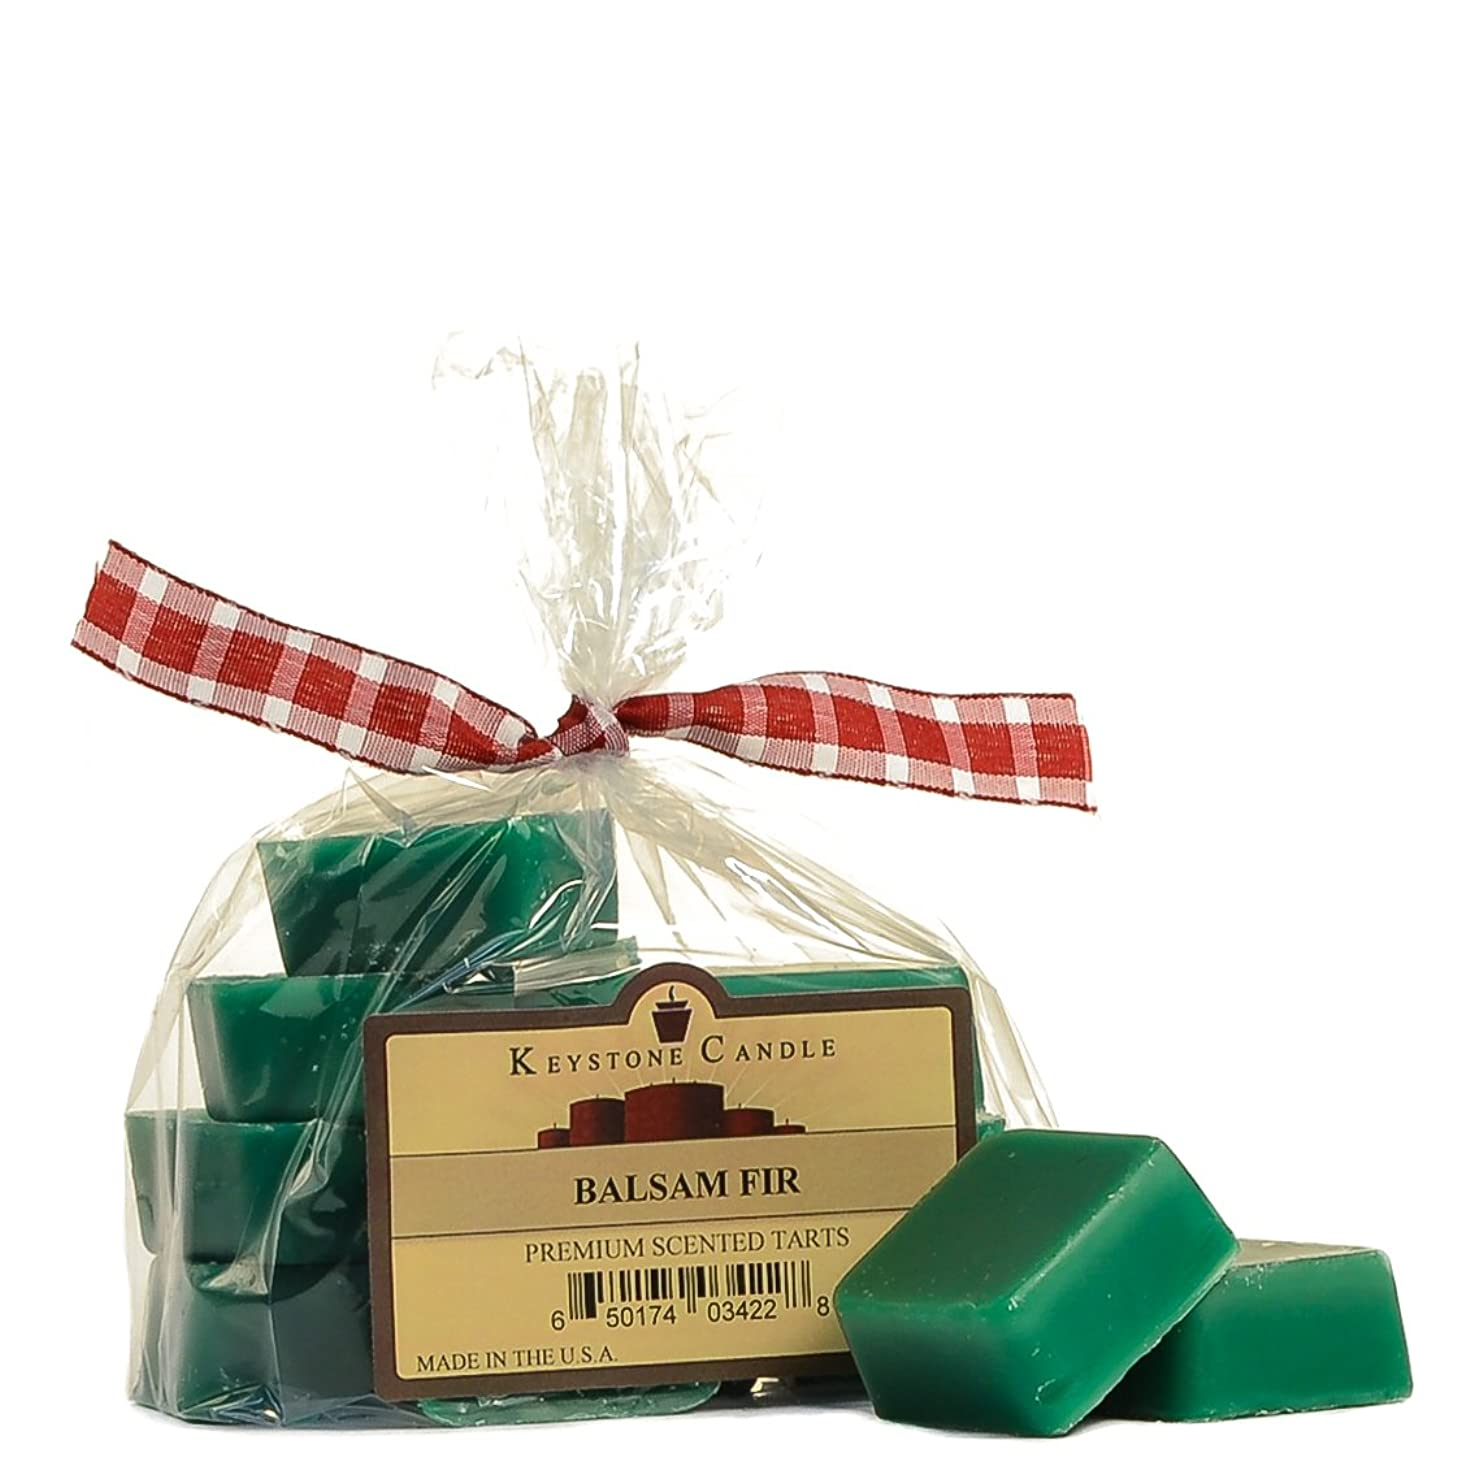 Balsam Fir Scented Wax Melts Candle For Wedding/Dinner, Holiday Event, Home Decoration, 6 oz, 1 15/16 in. wide x 5/8 in. thick per piece, 1 bag of 10 pieces